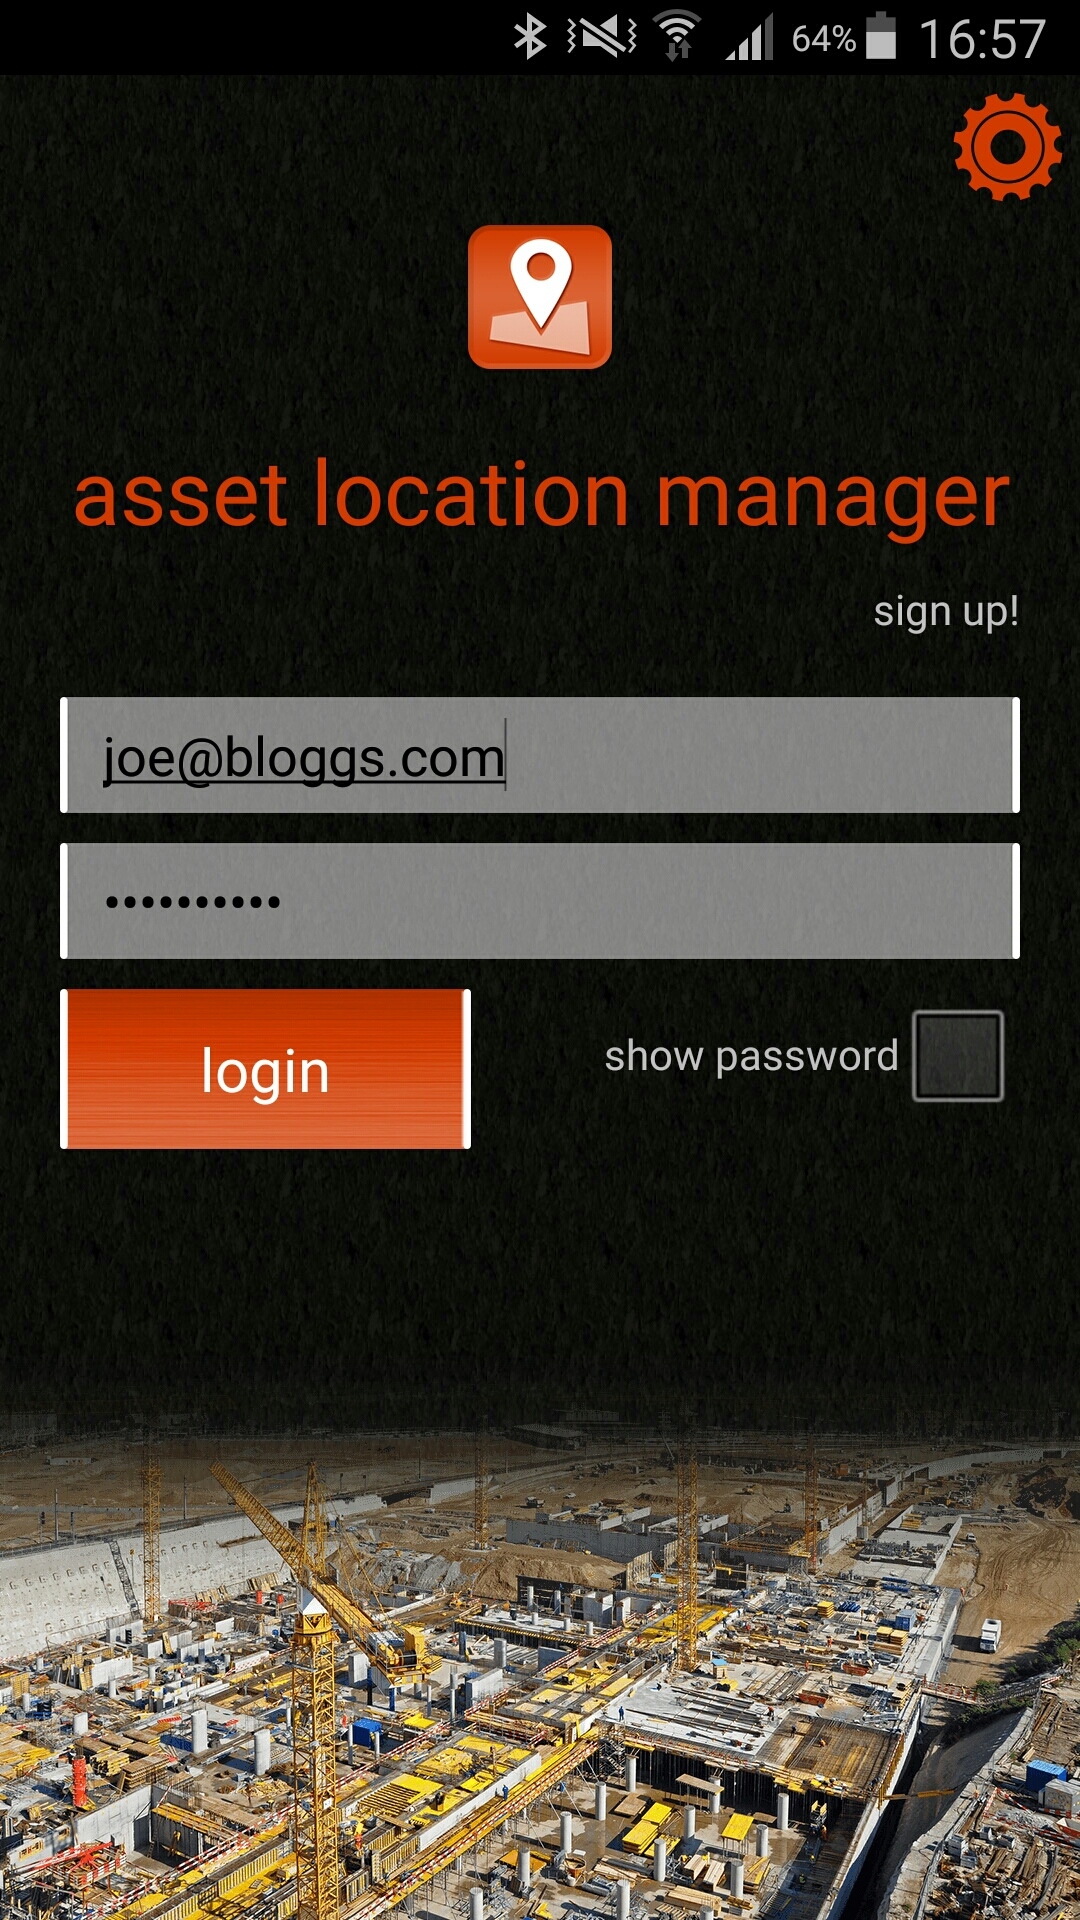 ginstr_app_asset_location_manager_EN-1